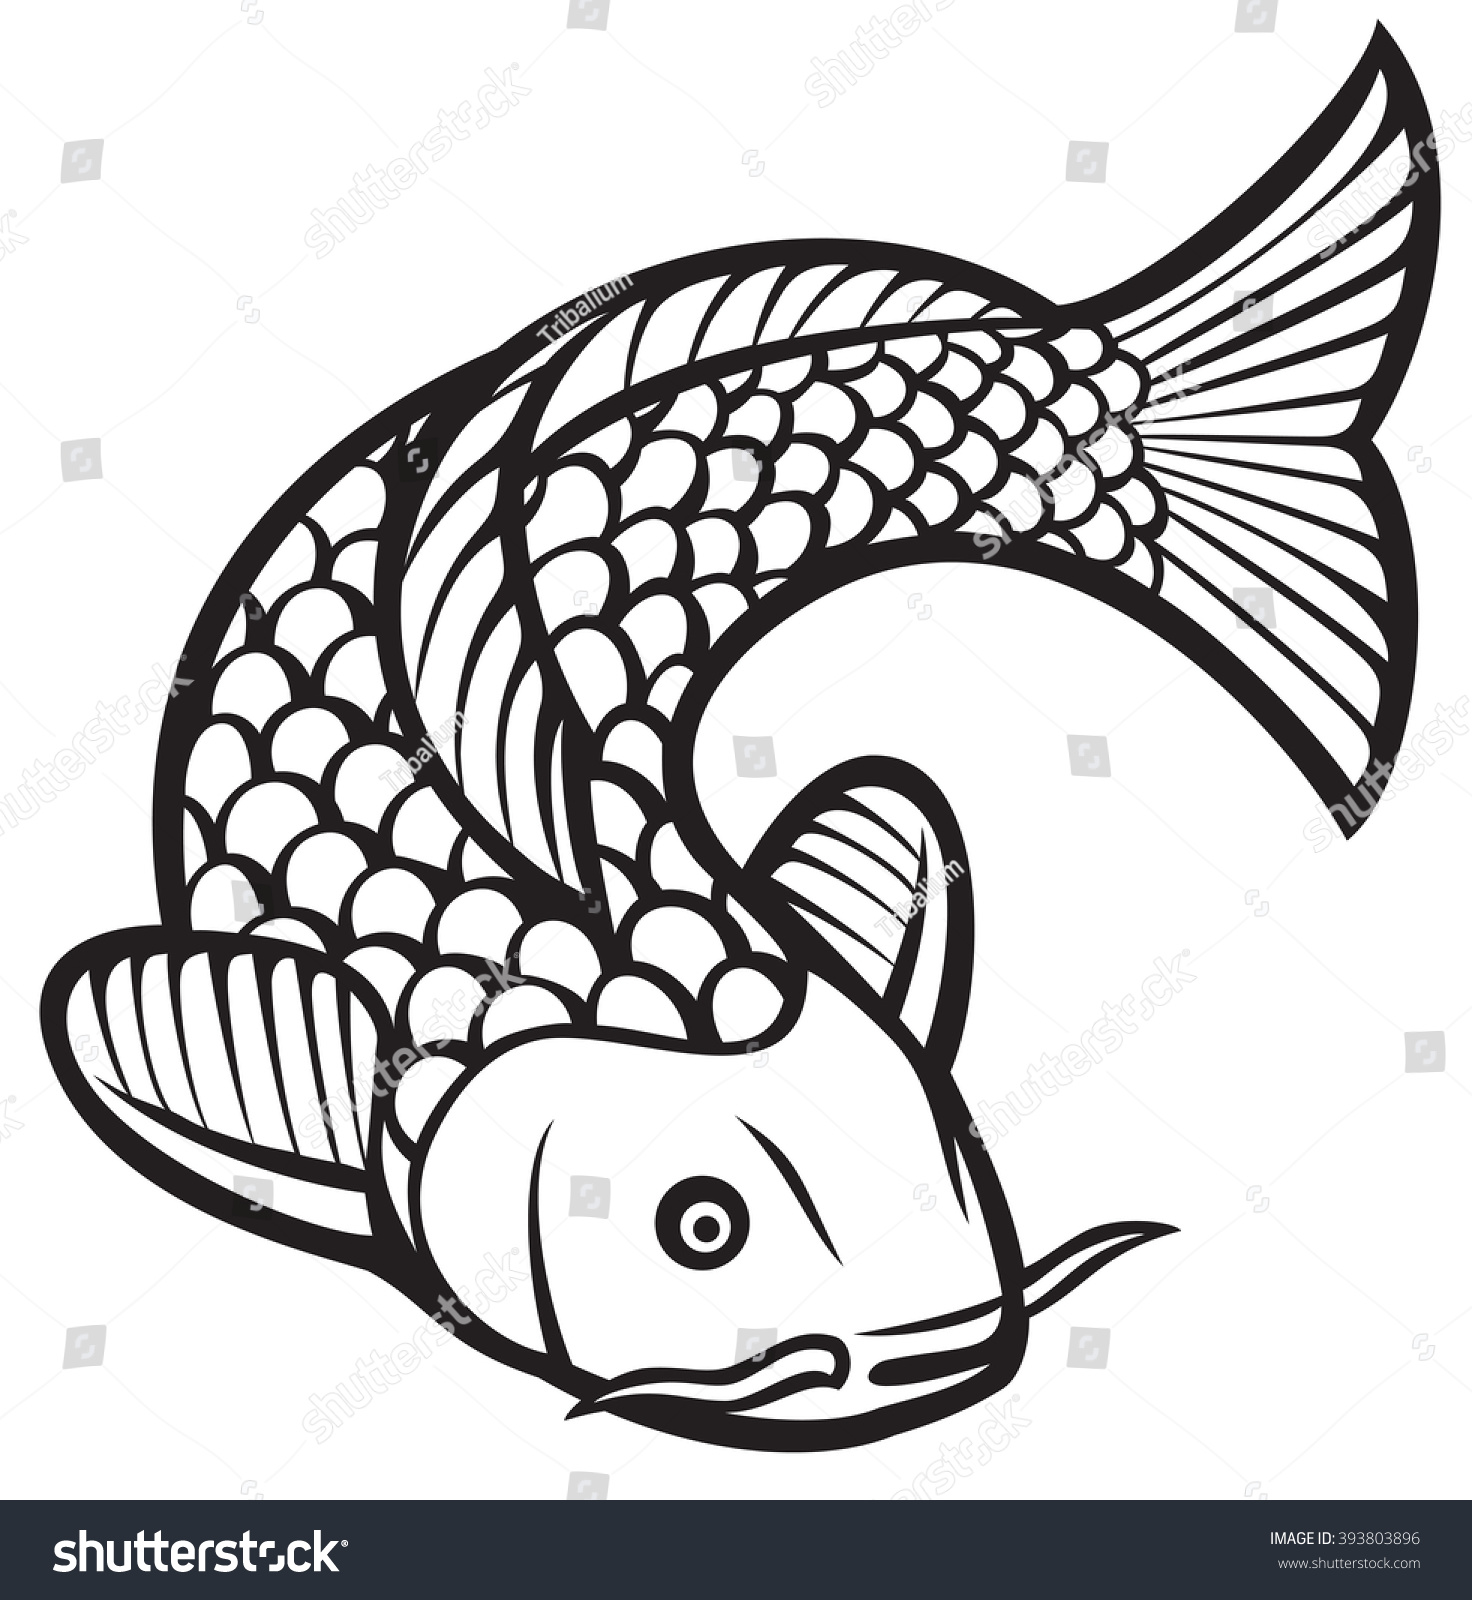 Koi fish stock vector 393803896 shutterstock for Koi fish vector